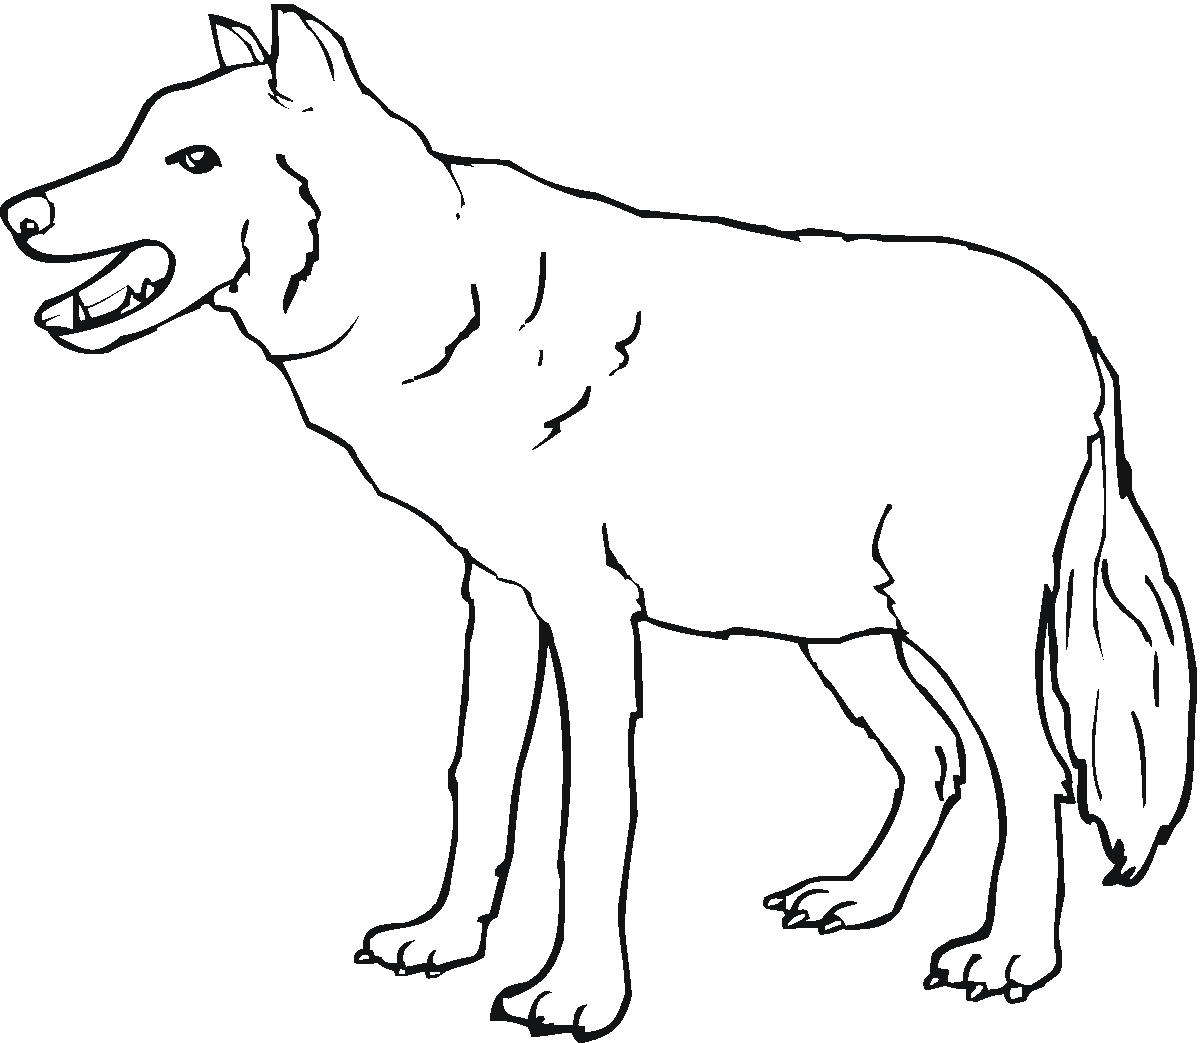 Wolf Coloring Pages Printable - Wolf Coloring Pages Elegant Free Printable Wolf Coloring Pages for Download